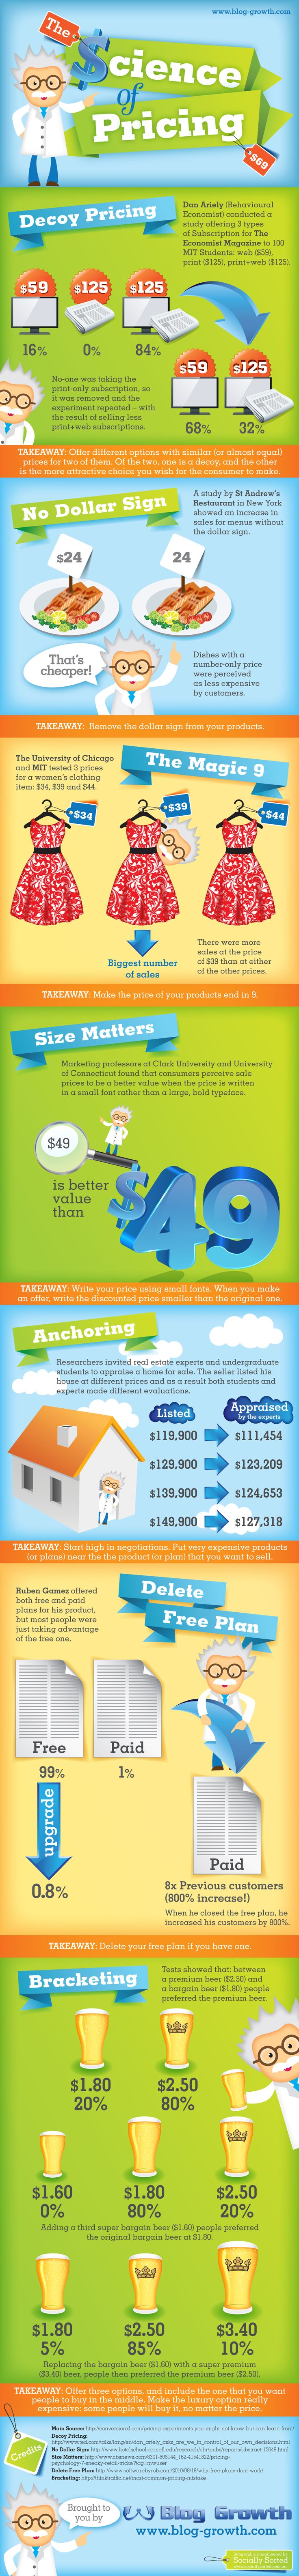 The Science of Pricing - Infographic presented by www.blog-growth.com (imagineered by www.SociallySorted.com.au)